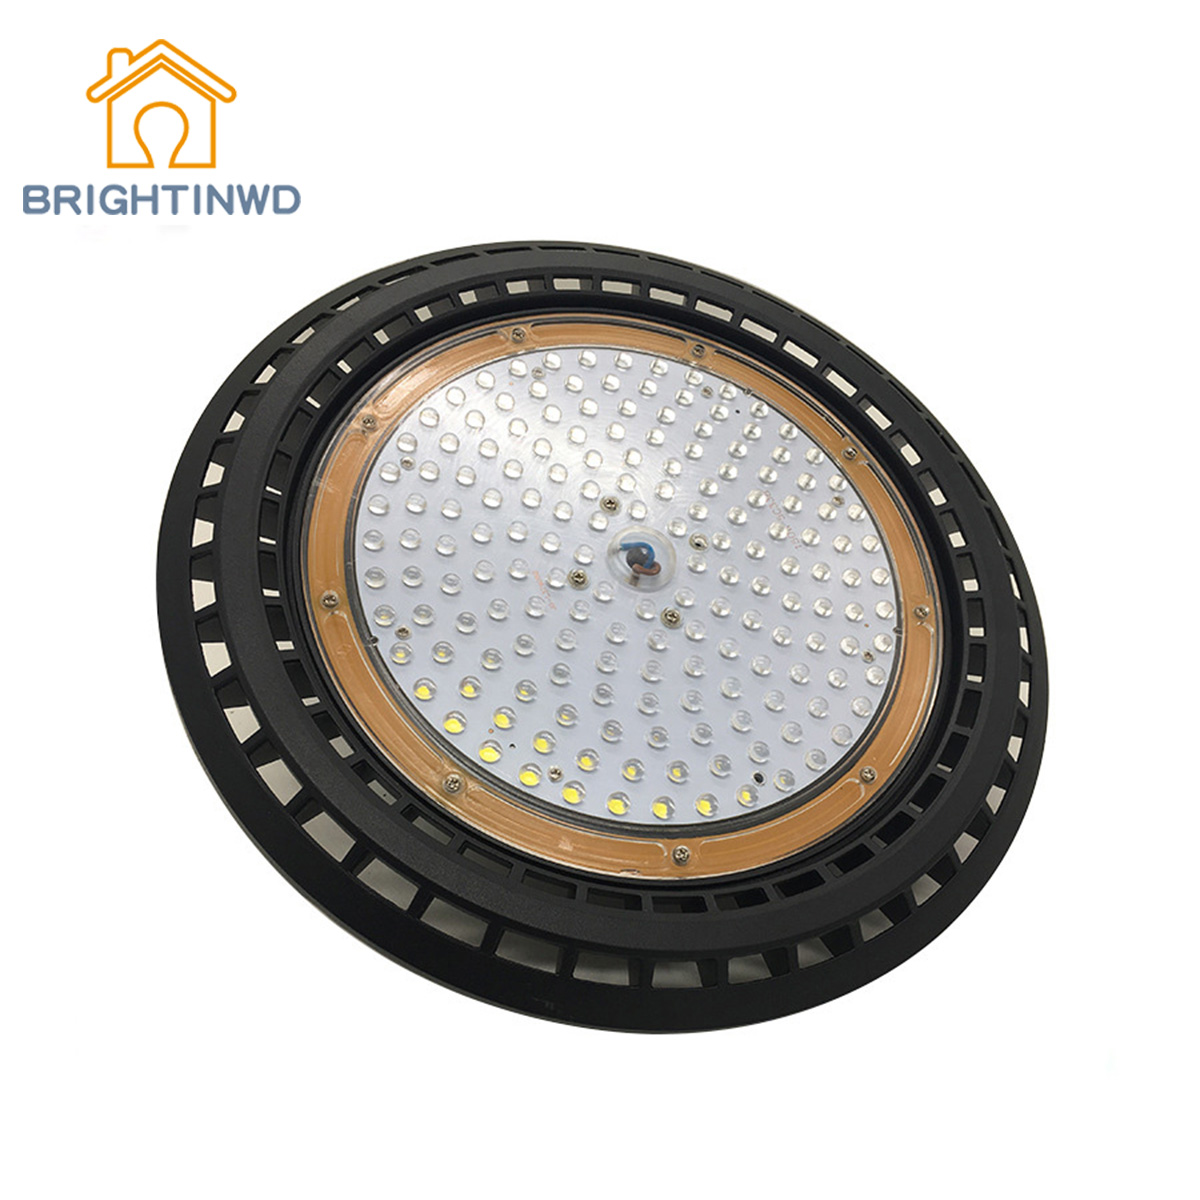 BRIGHTINWD UFO High Bay Light Fixture Round Bay Light UFO LED Factory Building Warehouse Lighting Explosion Proof UFO Light ufo high bay light led lamps industrial lighting round shape led suspension pendant lamp